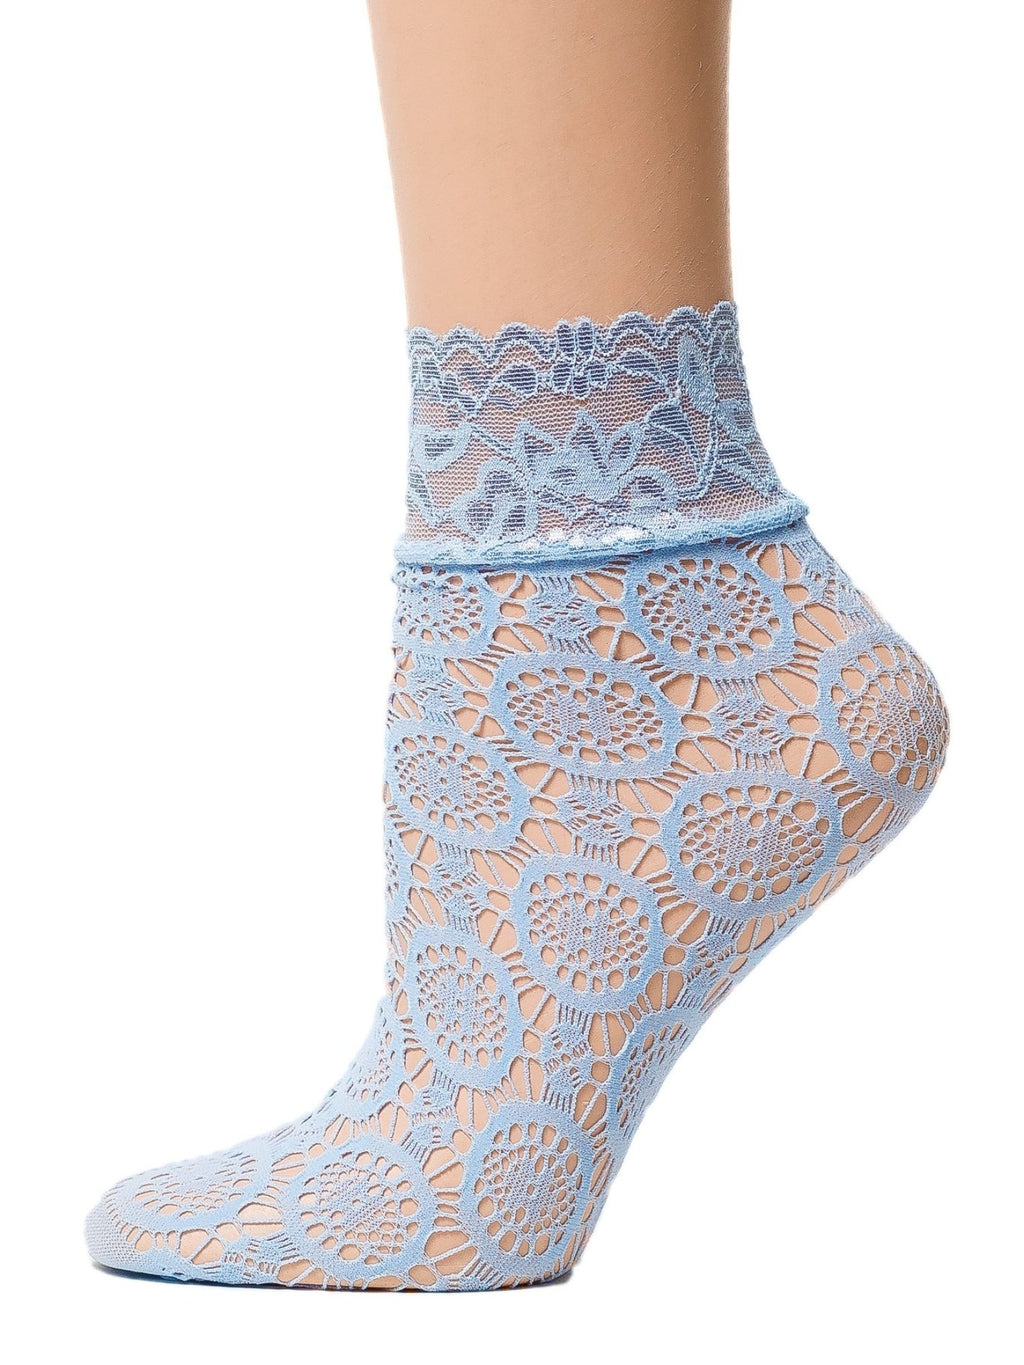 Sea Blue Mesh Socks - Global Trendz Fashion®